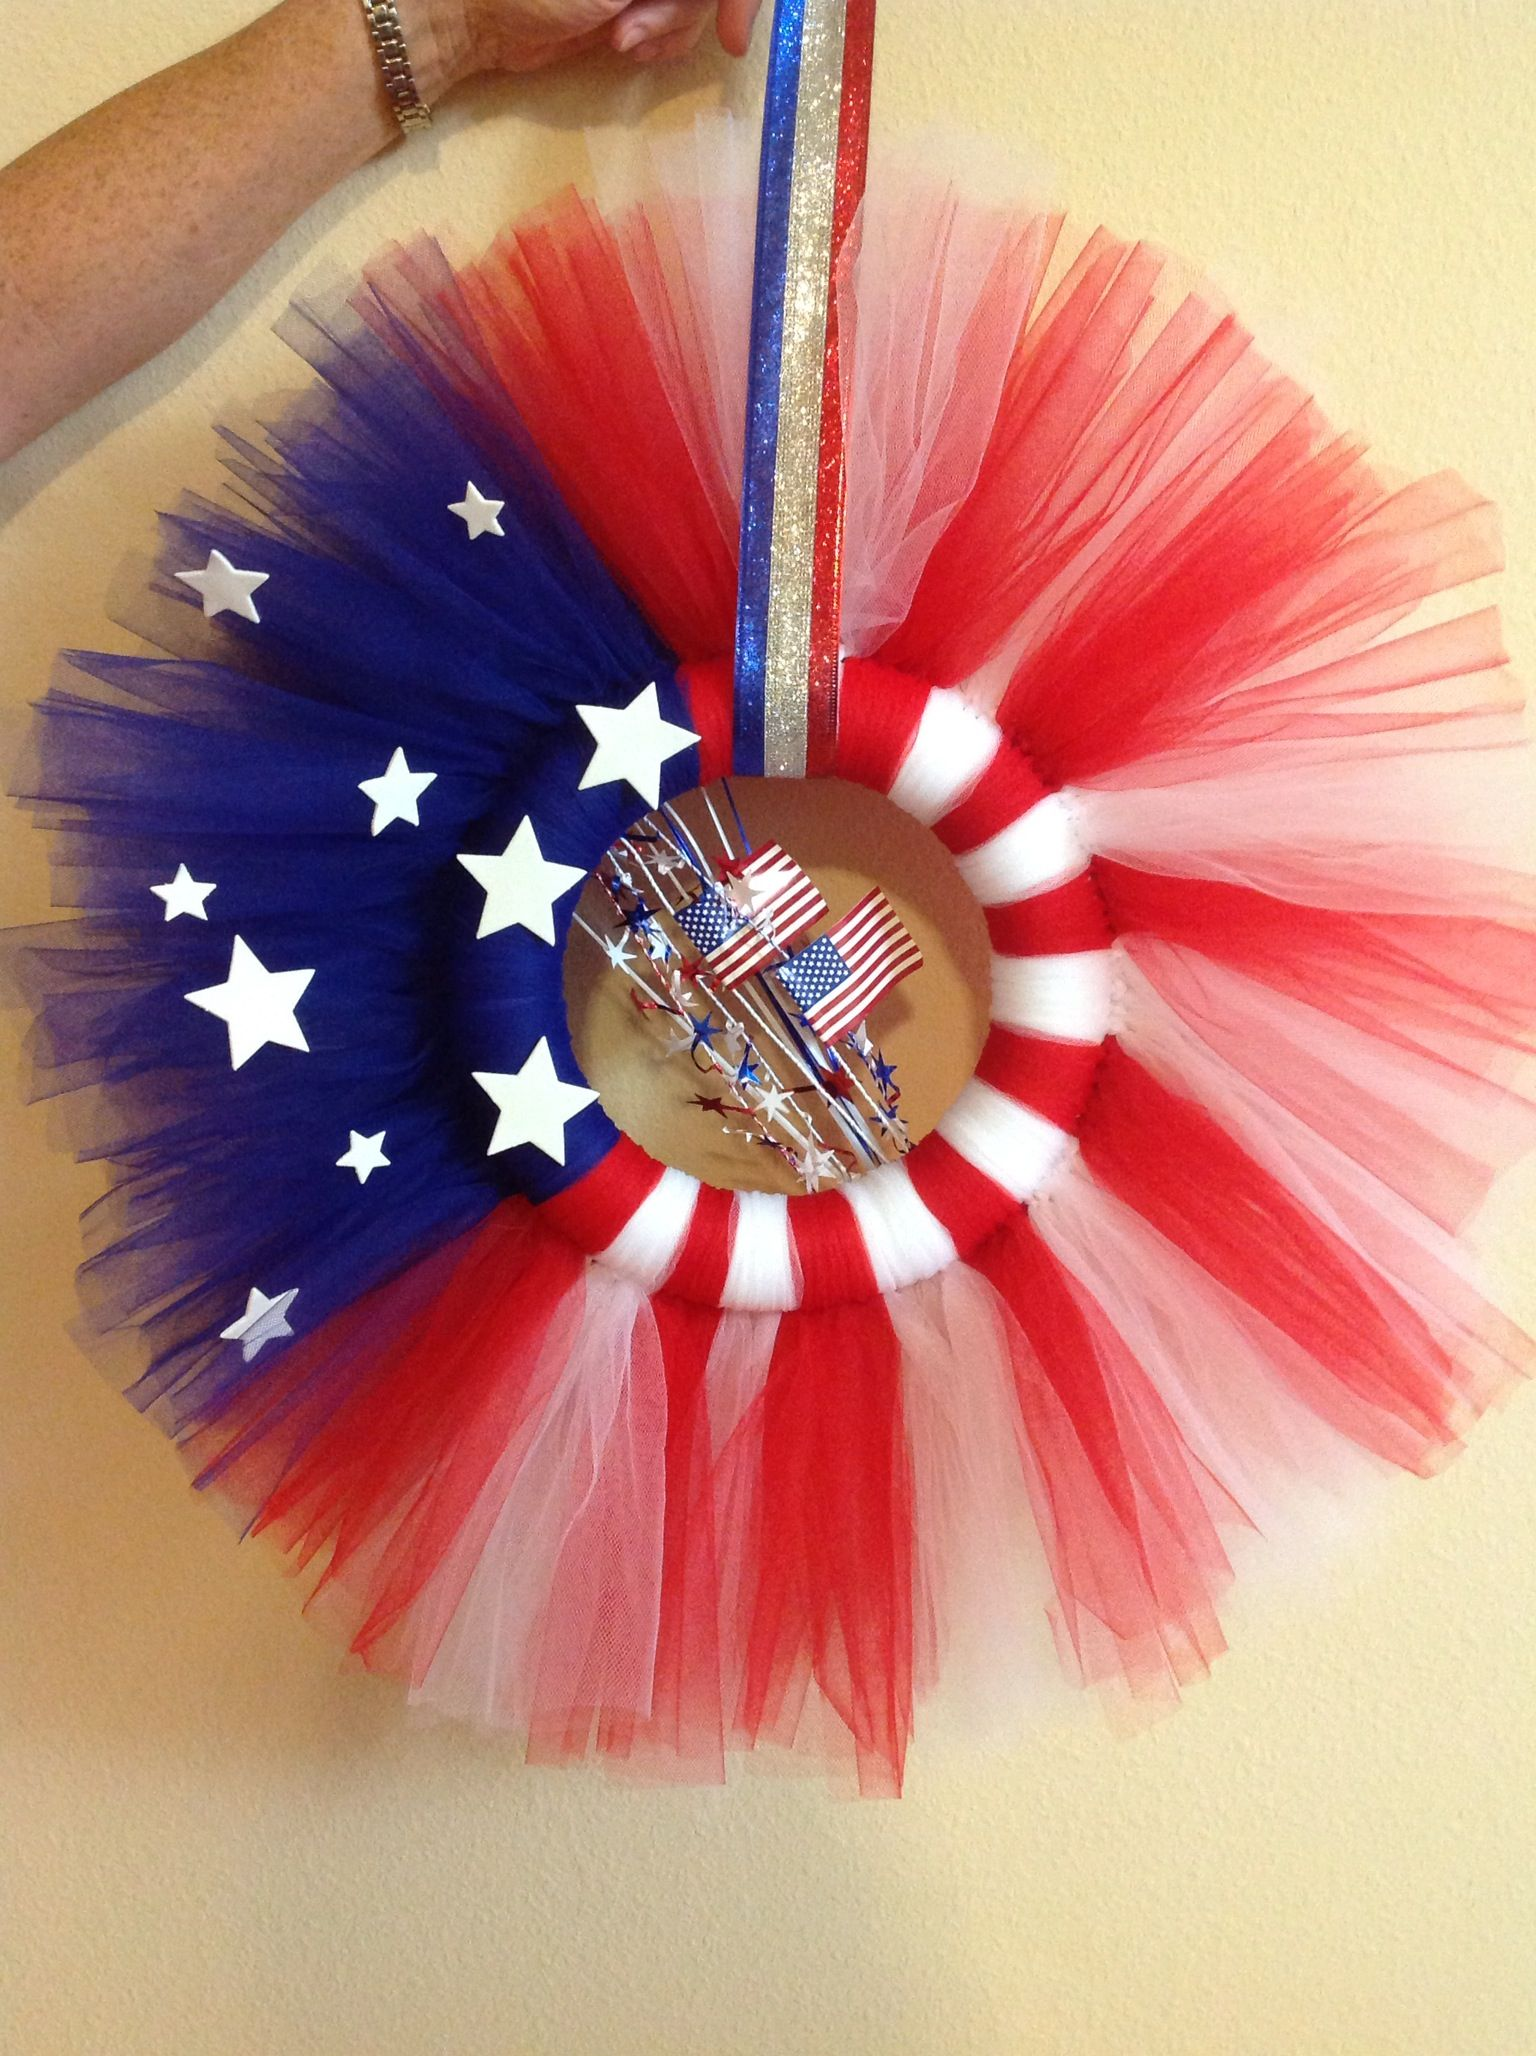 4th Of July Tulle Wreath With Images Tulle Wreath Tulle Crafts 4th Of July Decorations